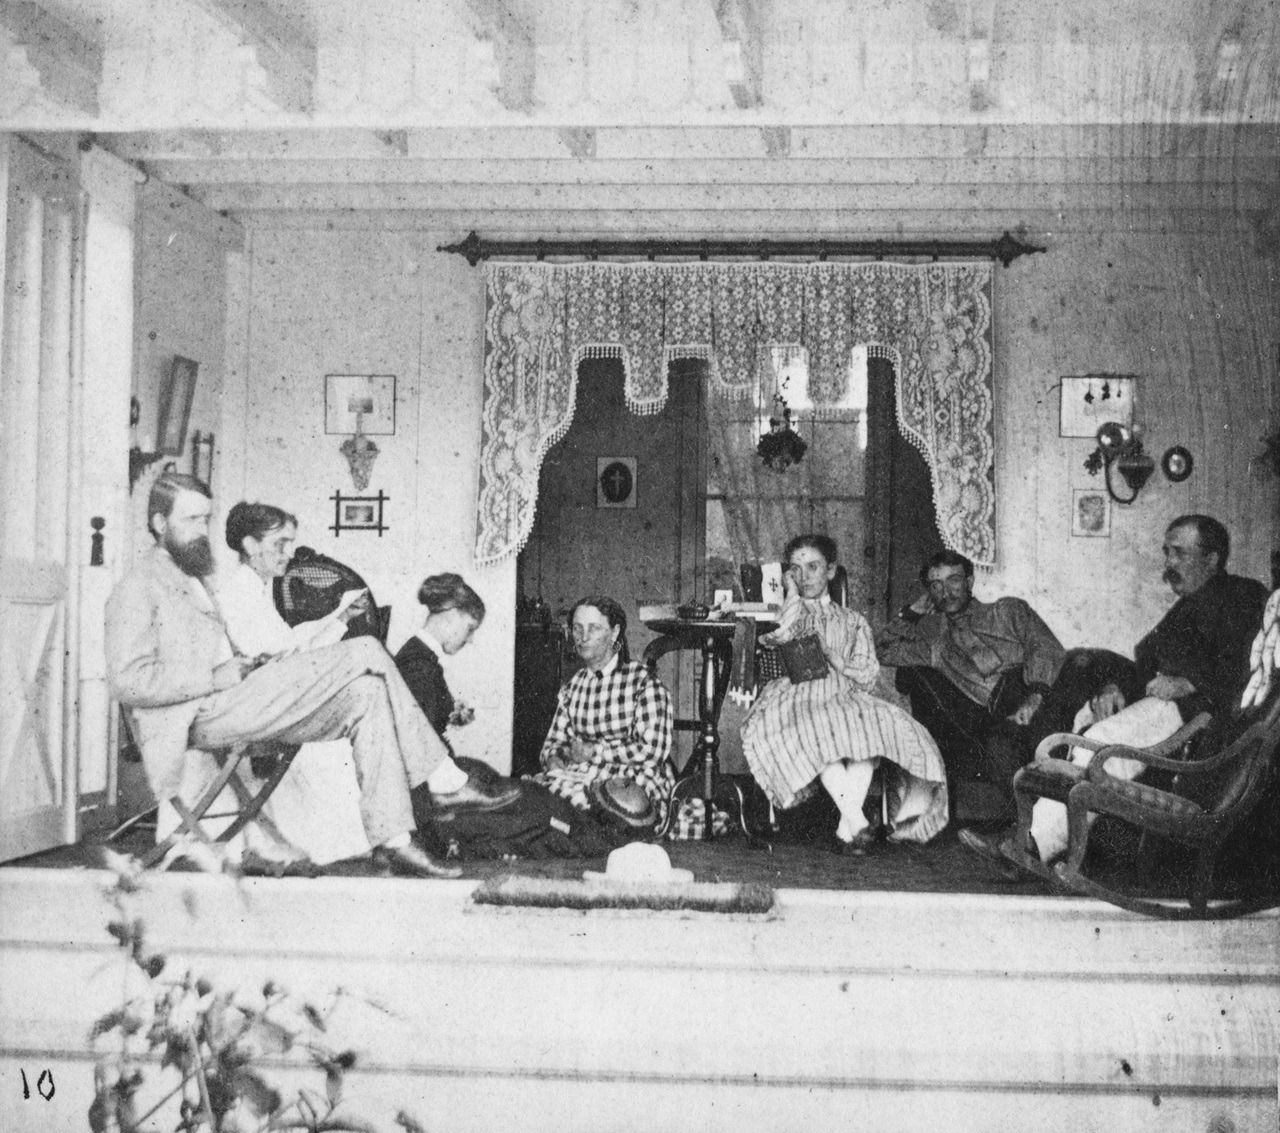 Stereoview Portrait Of A Group Posing In The Interior Of A